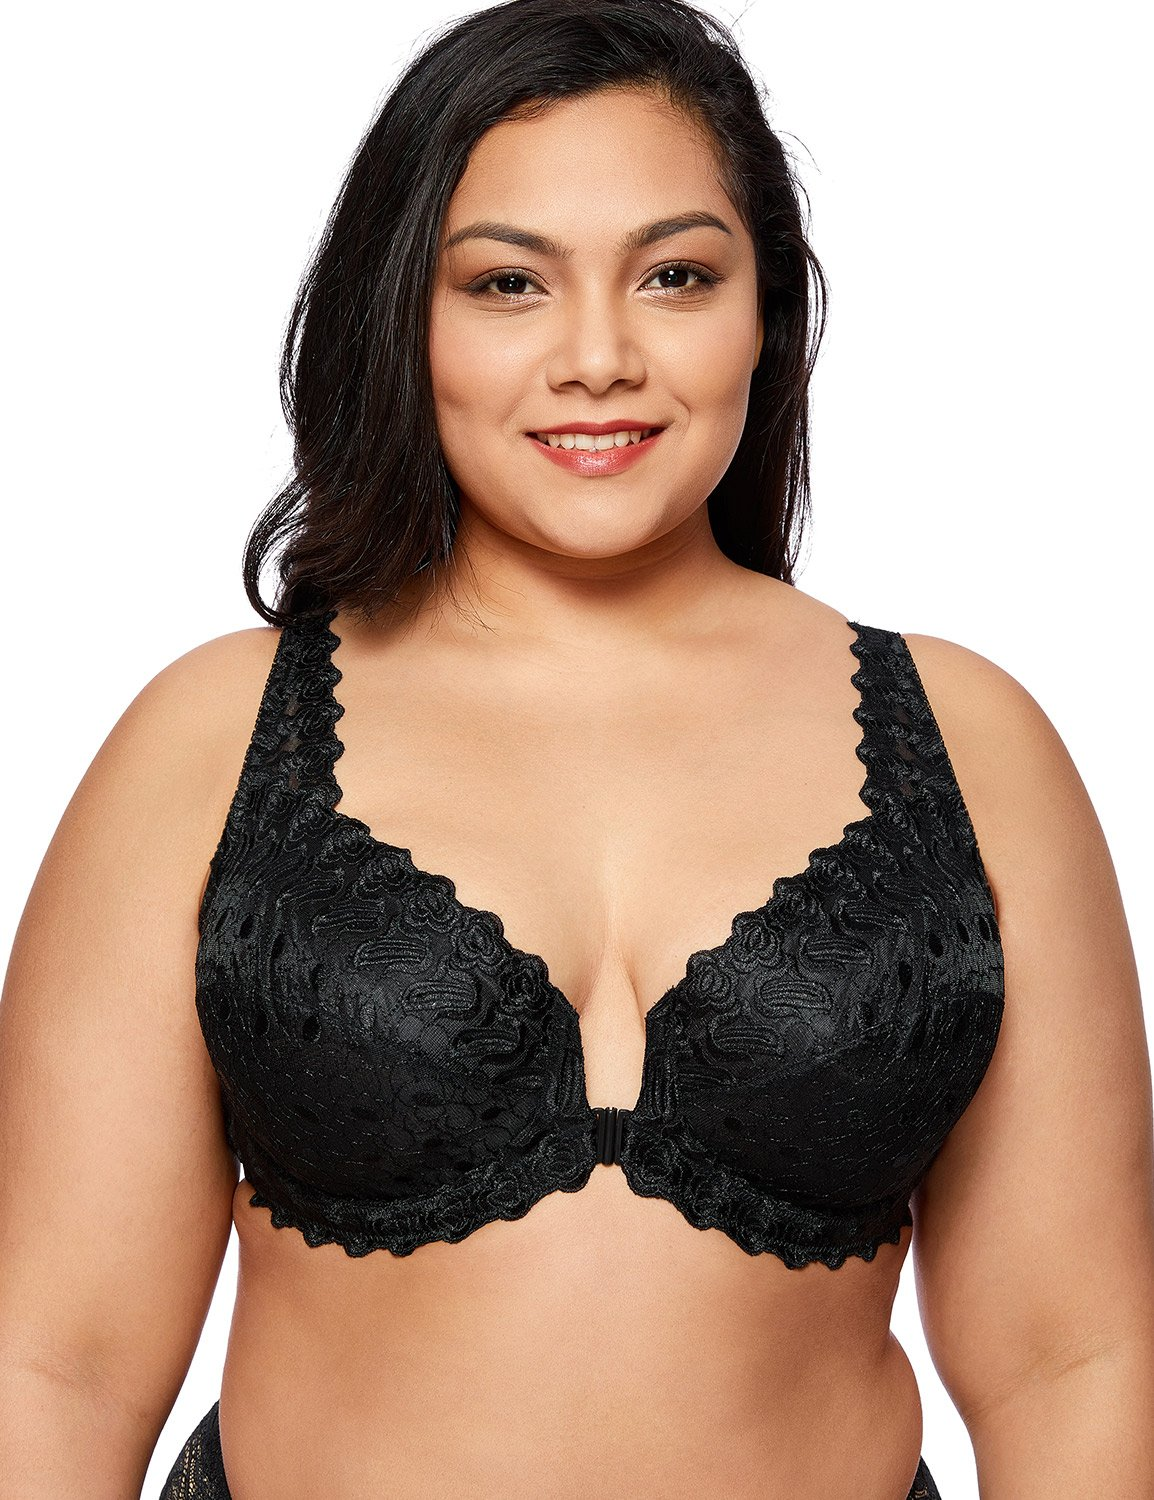 DELIMIRA Women's Plus Size Support Unlined Embroidered Lace Front Close Underwired Bra